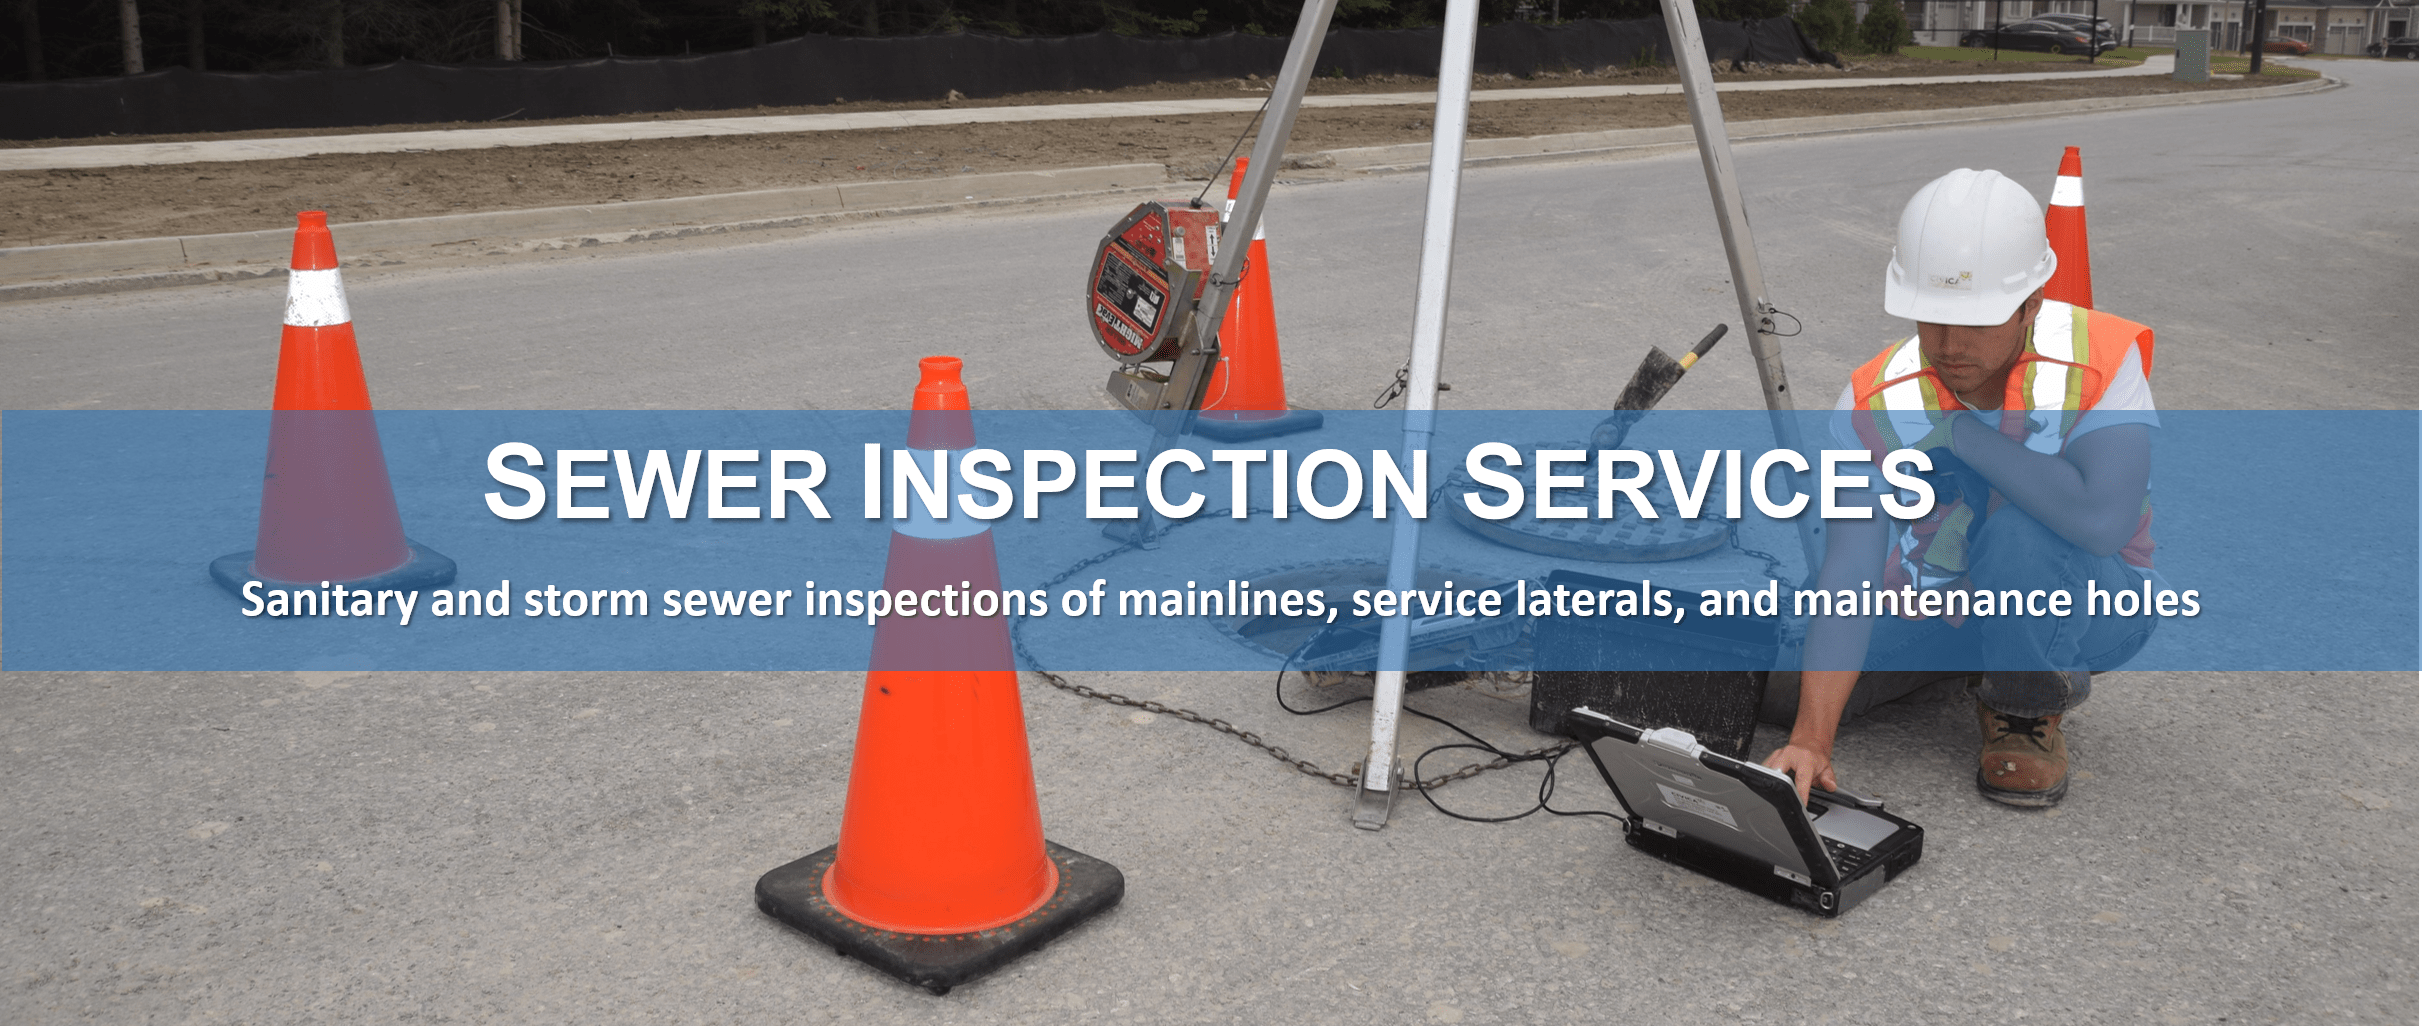 sewer inspection civica